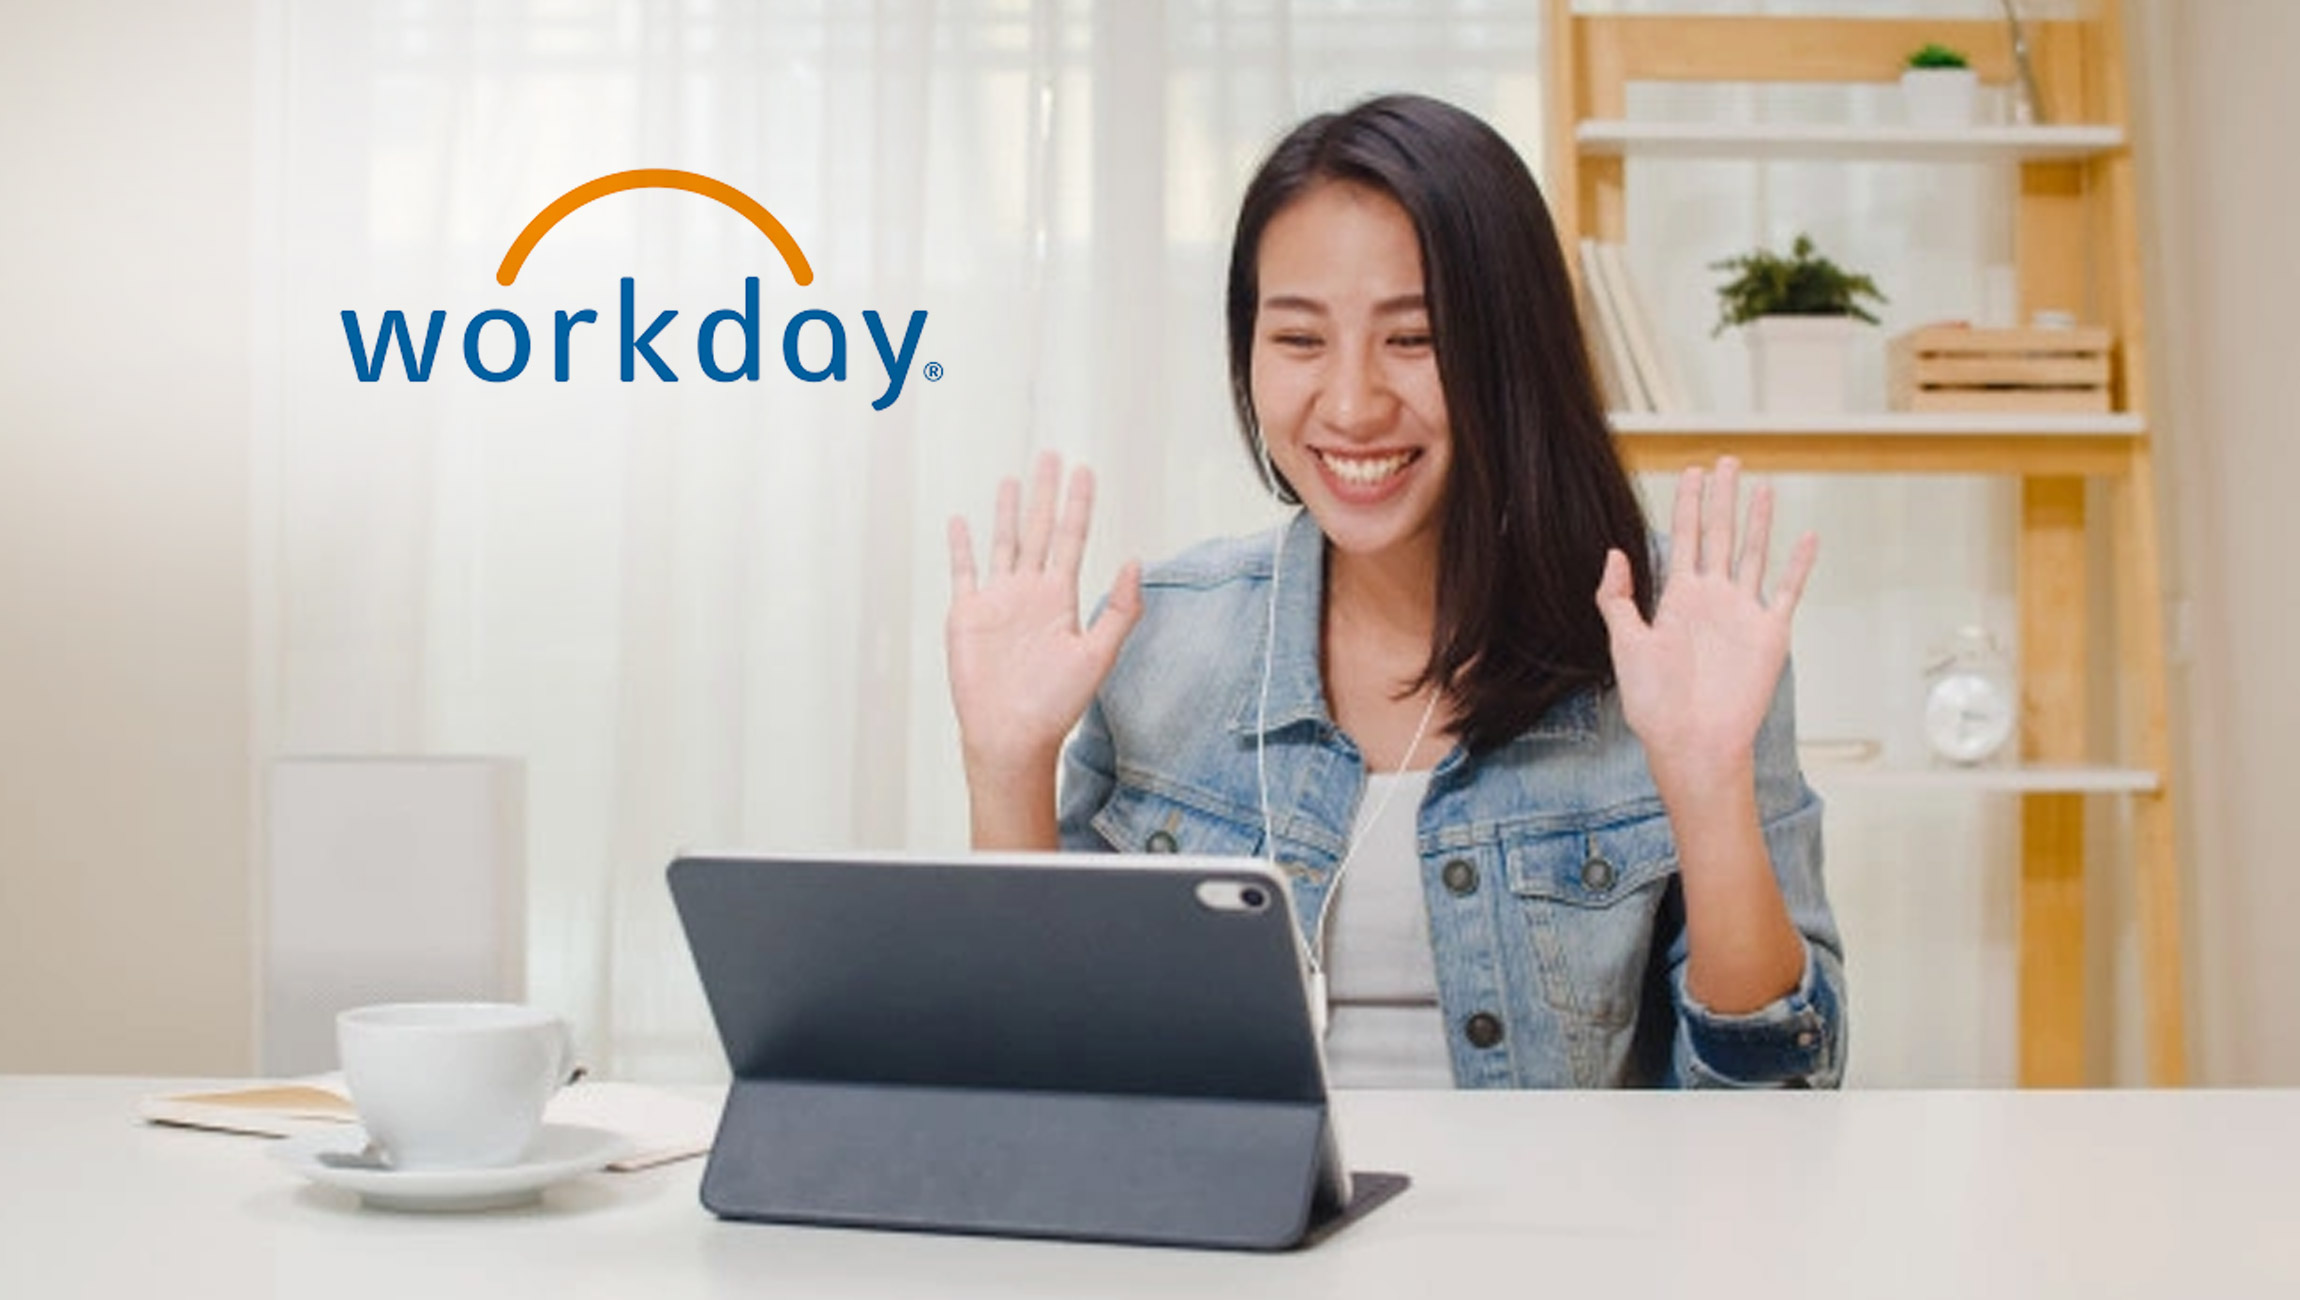 Workday Meets Growing Customer Demand with Record Number of Deployments and Industry-Leading Customer Satisfaction Score